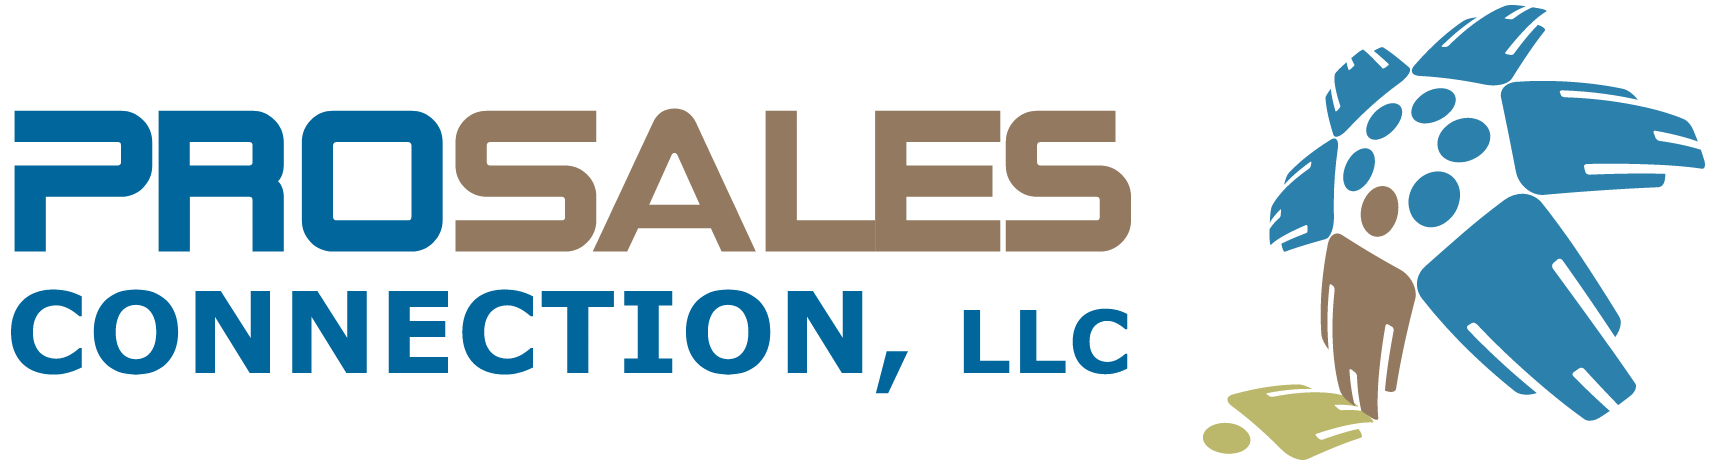 ProSales Connection | Growing B2B companies faster since 2008.